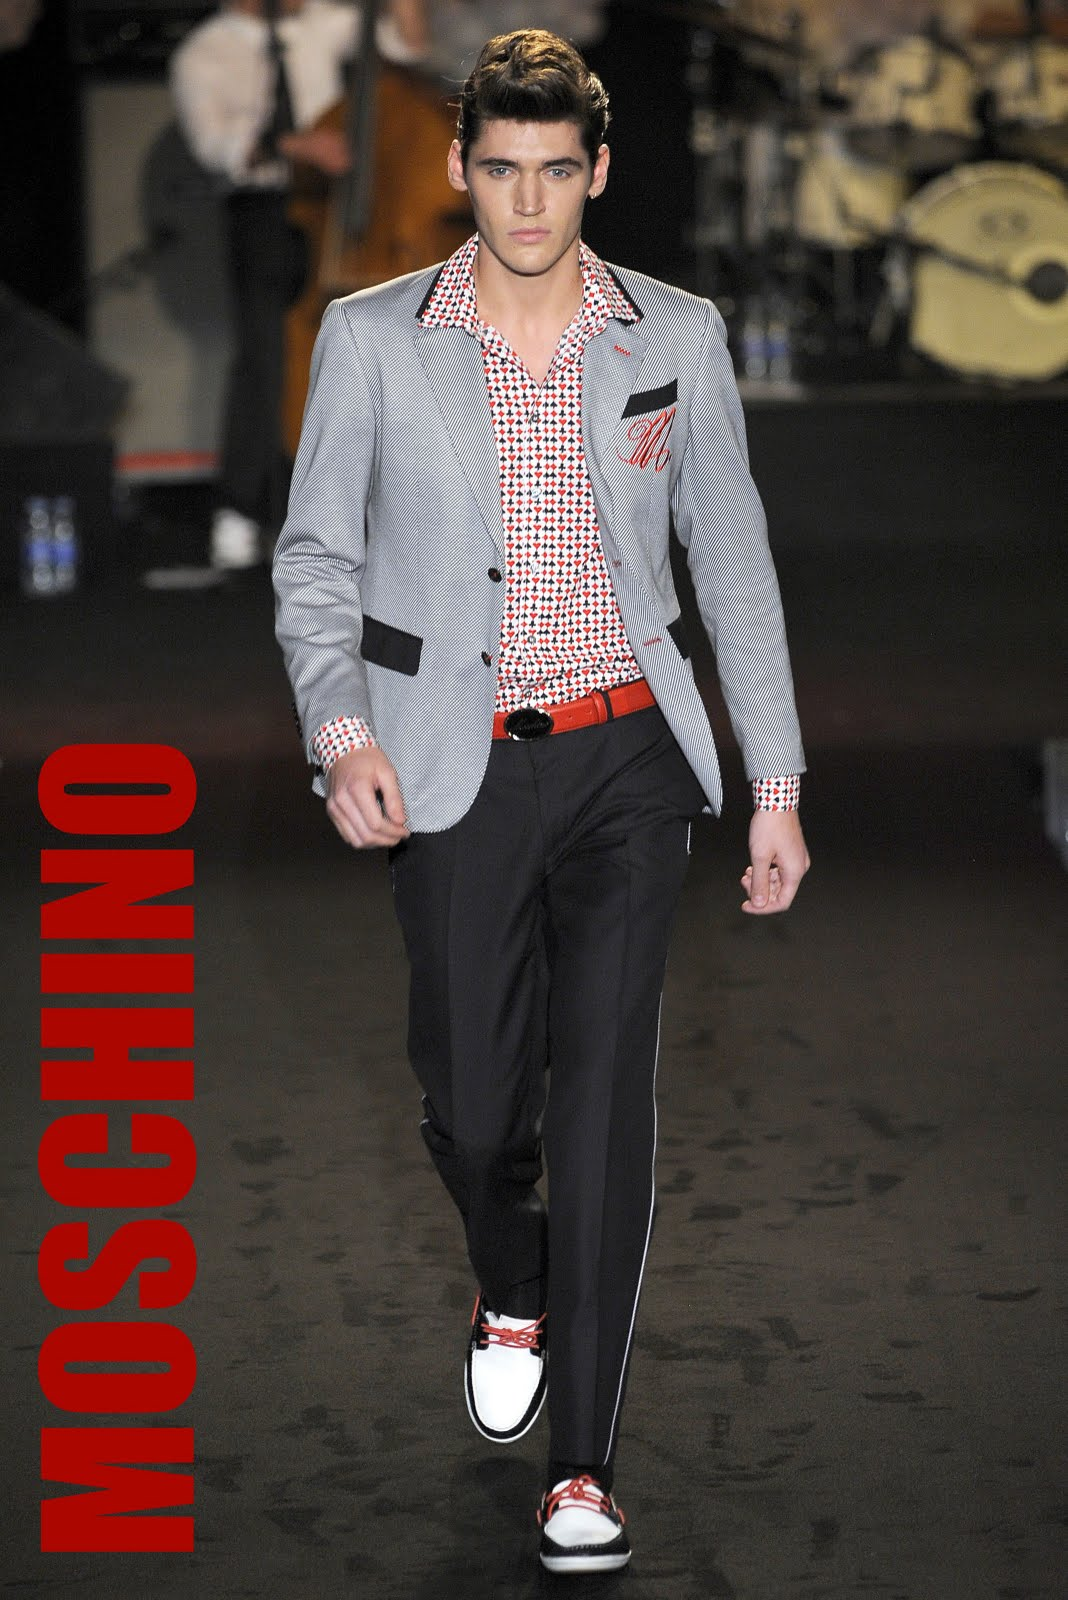 Top Milano Fashion Man Week: Diario di bordo - Modaholic WM63